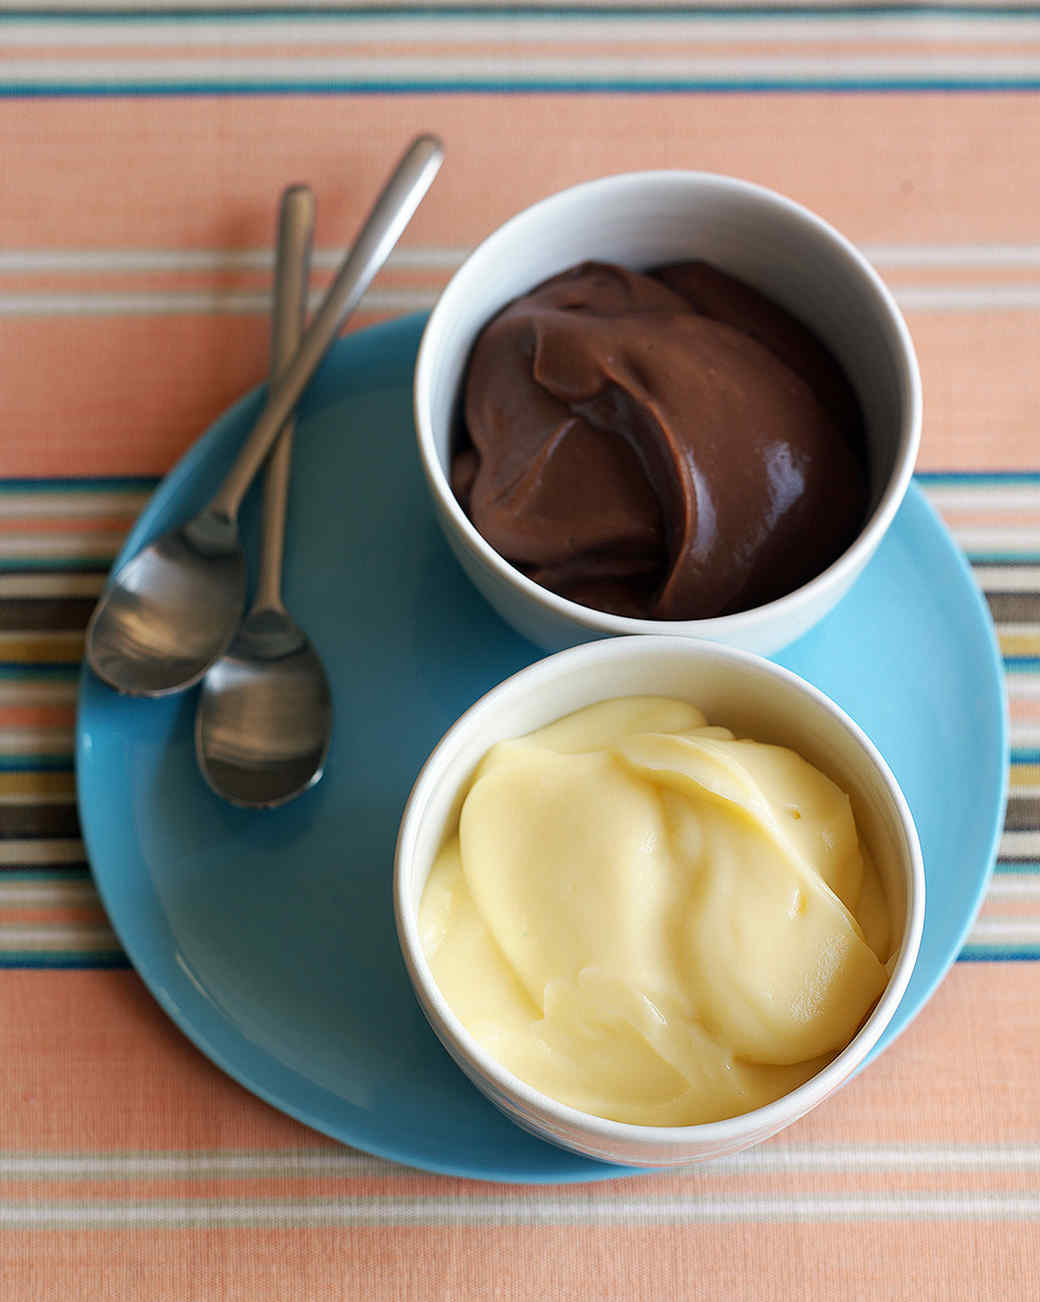 or Chocolate Pudding